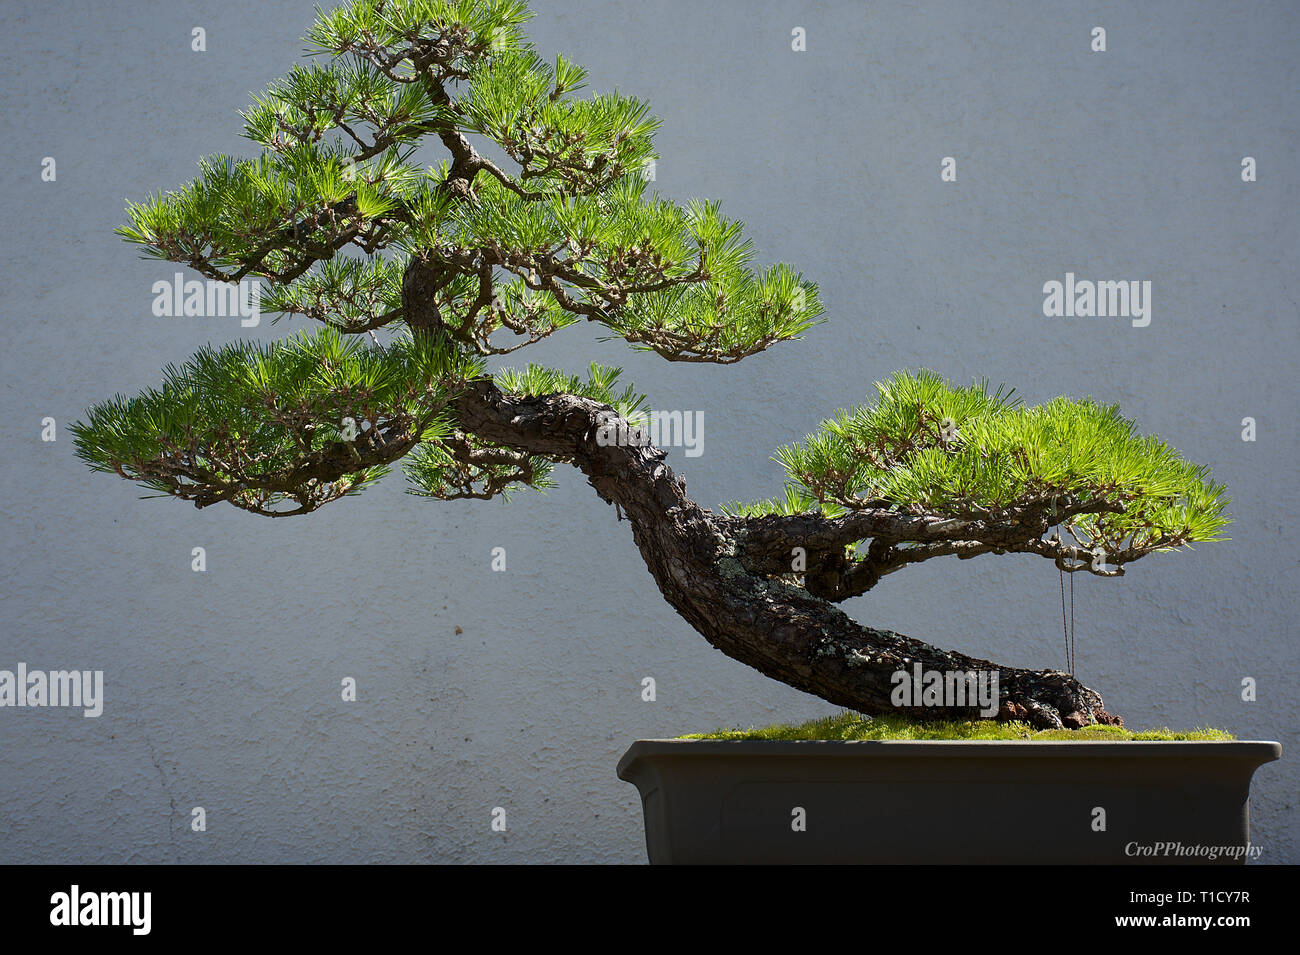 Page 2 Japanese Black Pine High Resolution Stock Photography And Images Alamy